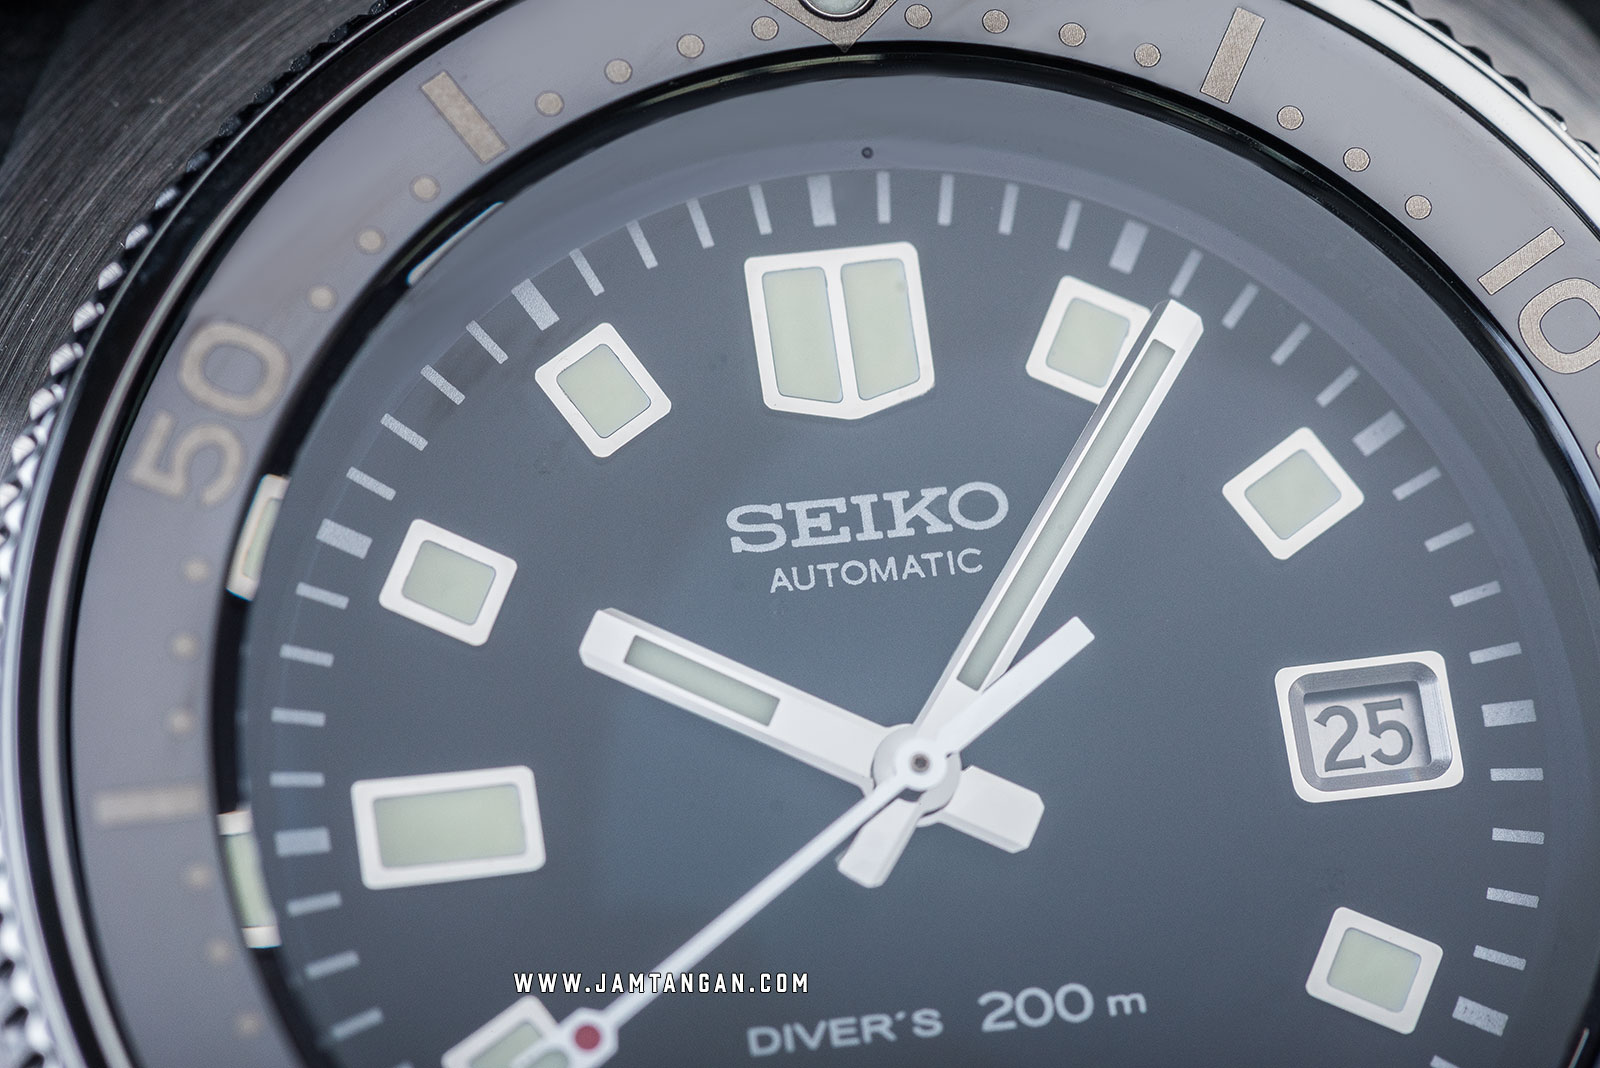 Seiko Prospex SLA033J1 Baselworld 2019 Divers 200M Limited Edition Machtwatch